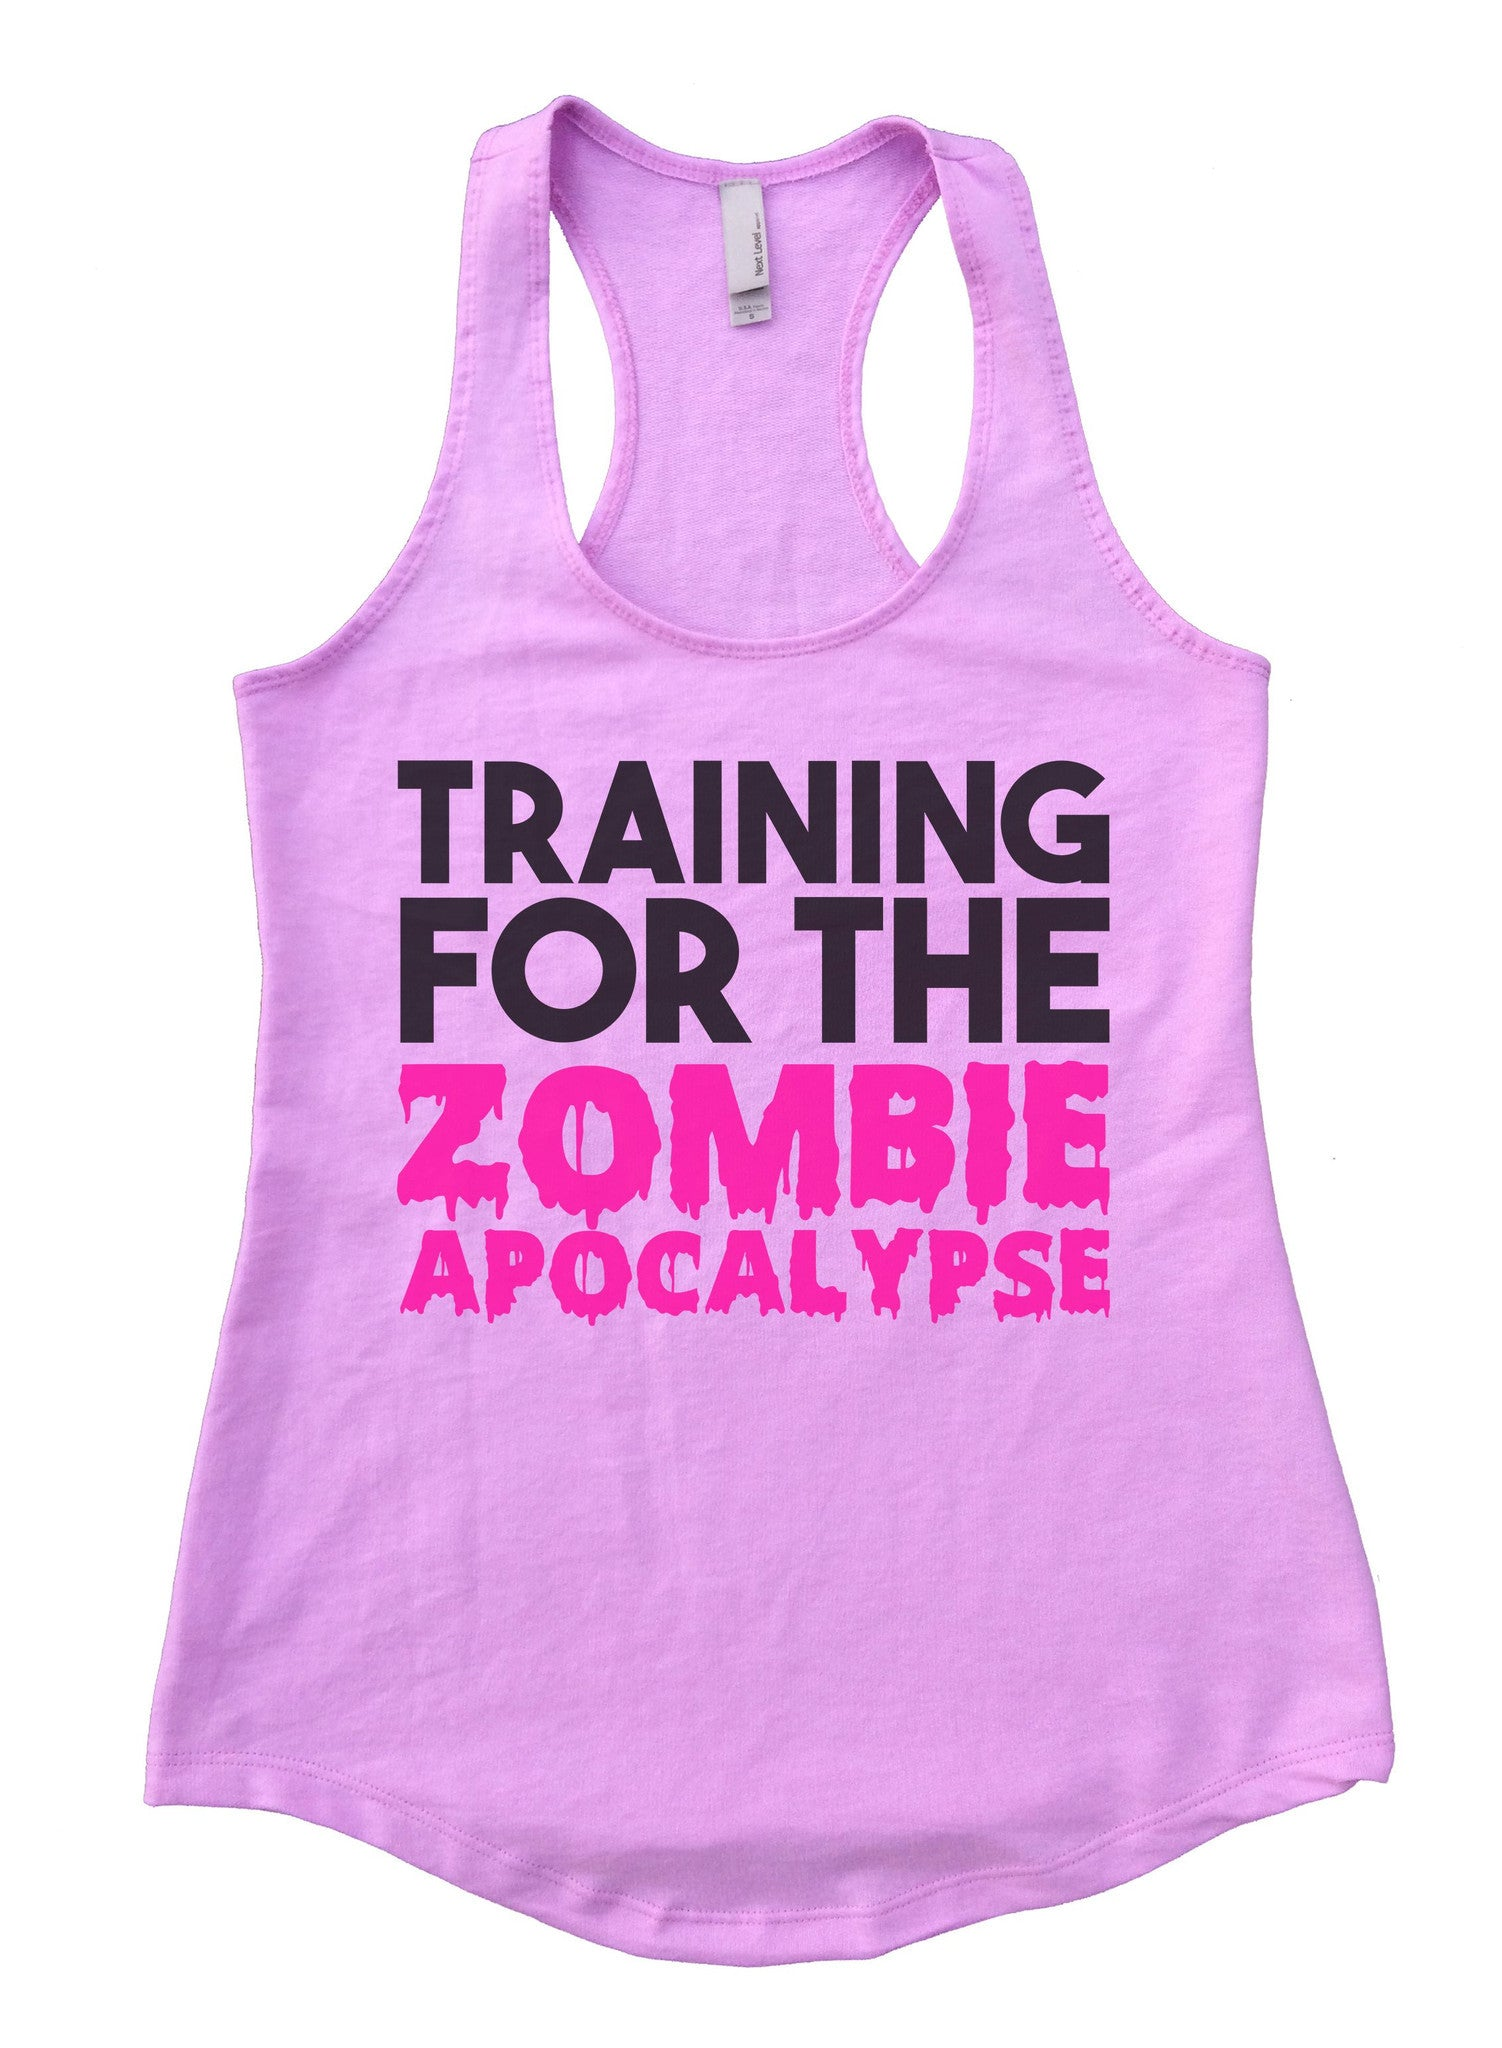 Training For The Zombie Apocalypse Womens Workout Tank Top F873 - Funny Shirts Tank Tops Burnouts and Triblends  - 4